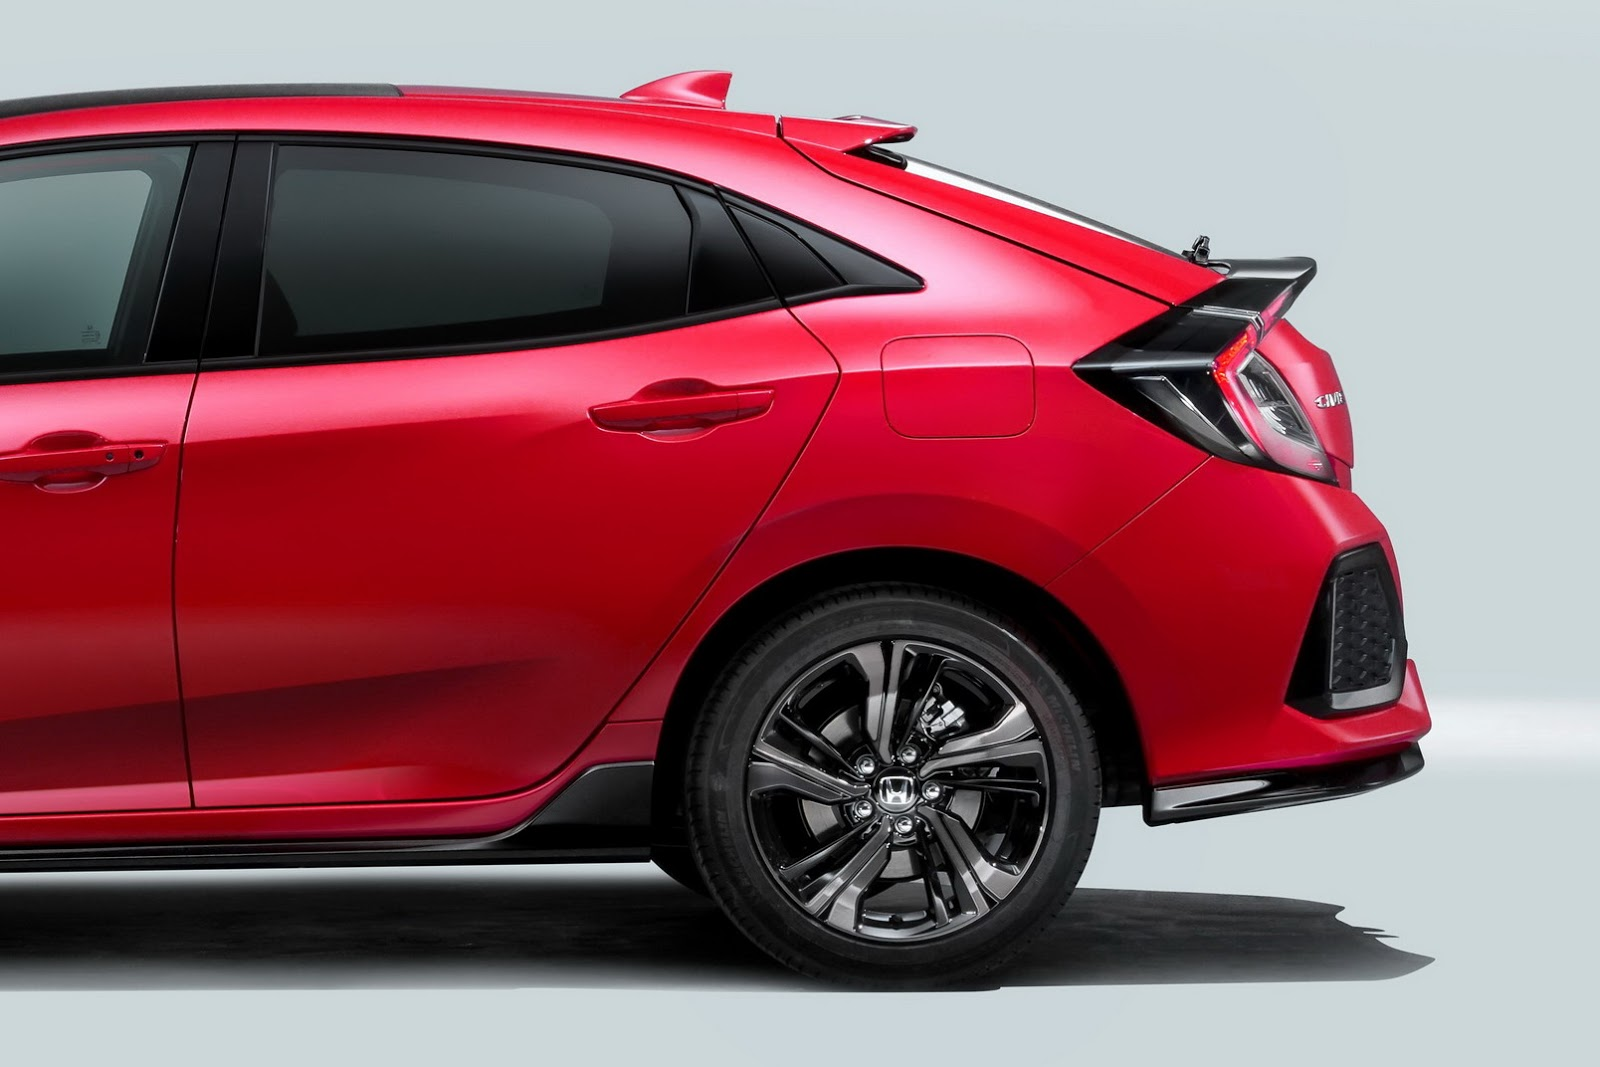 civic_hatchback-9